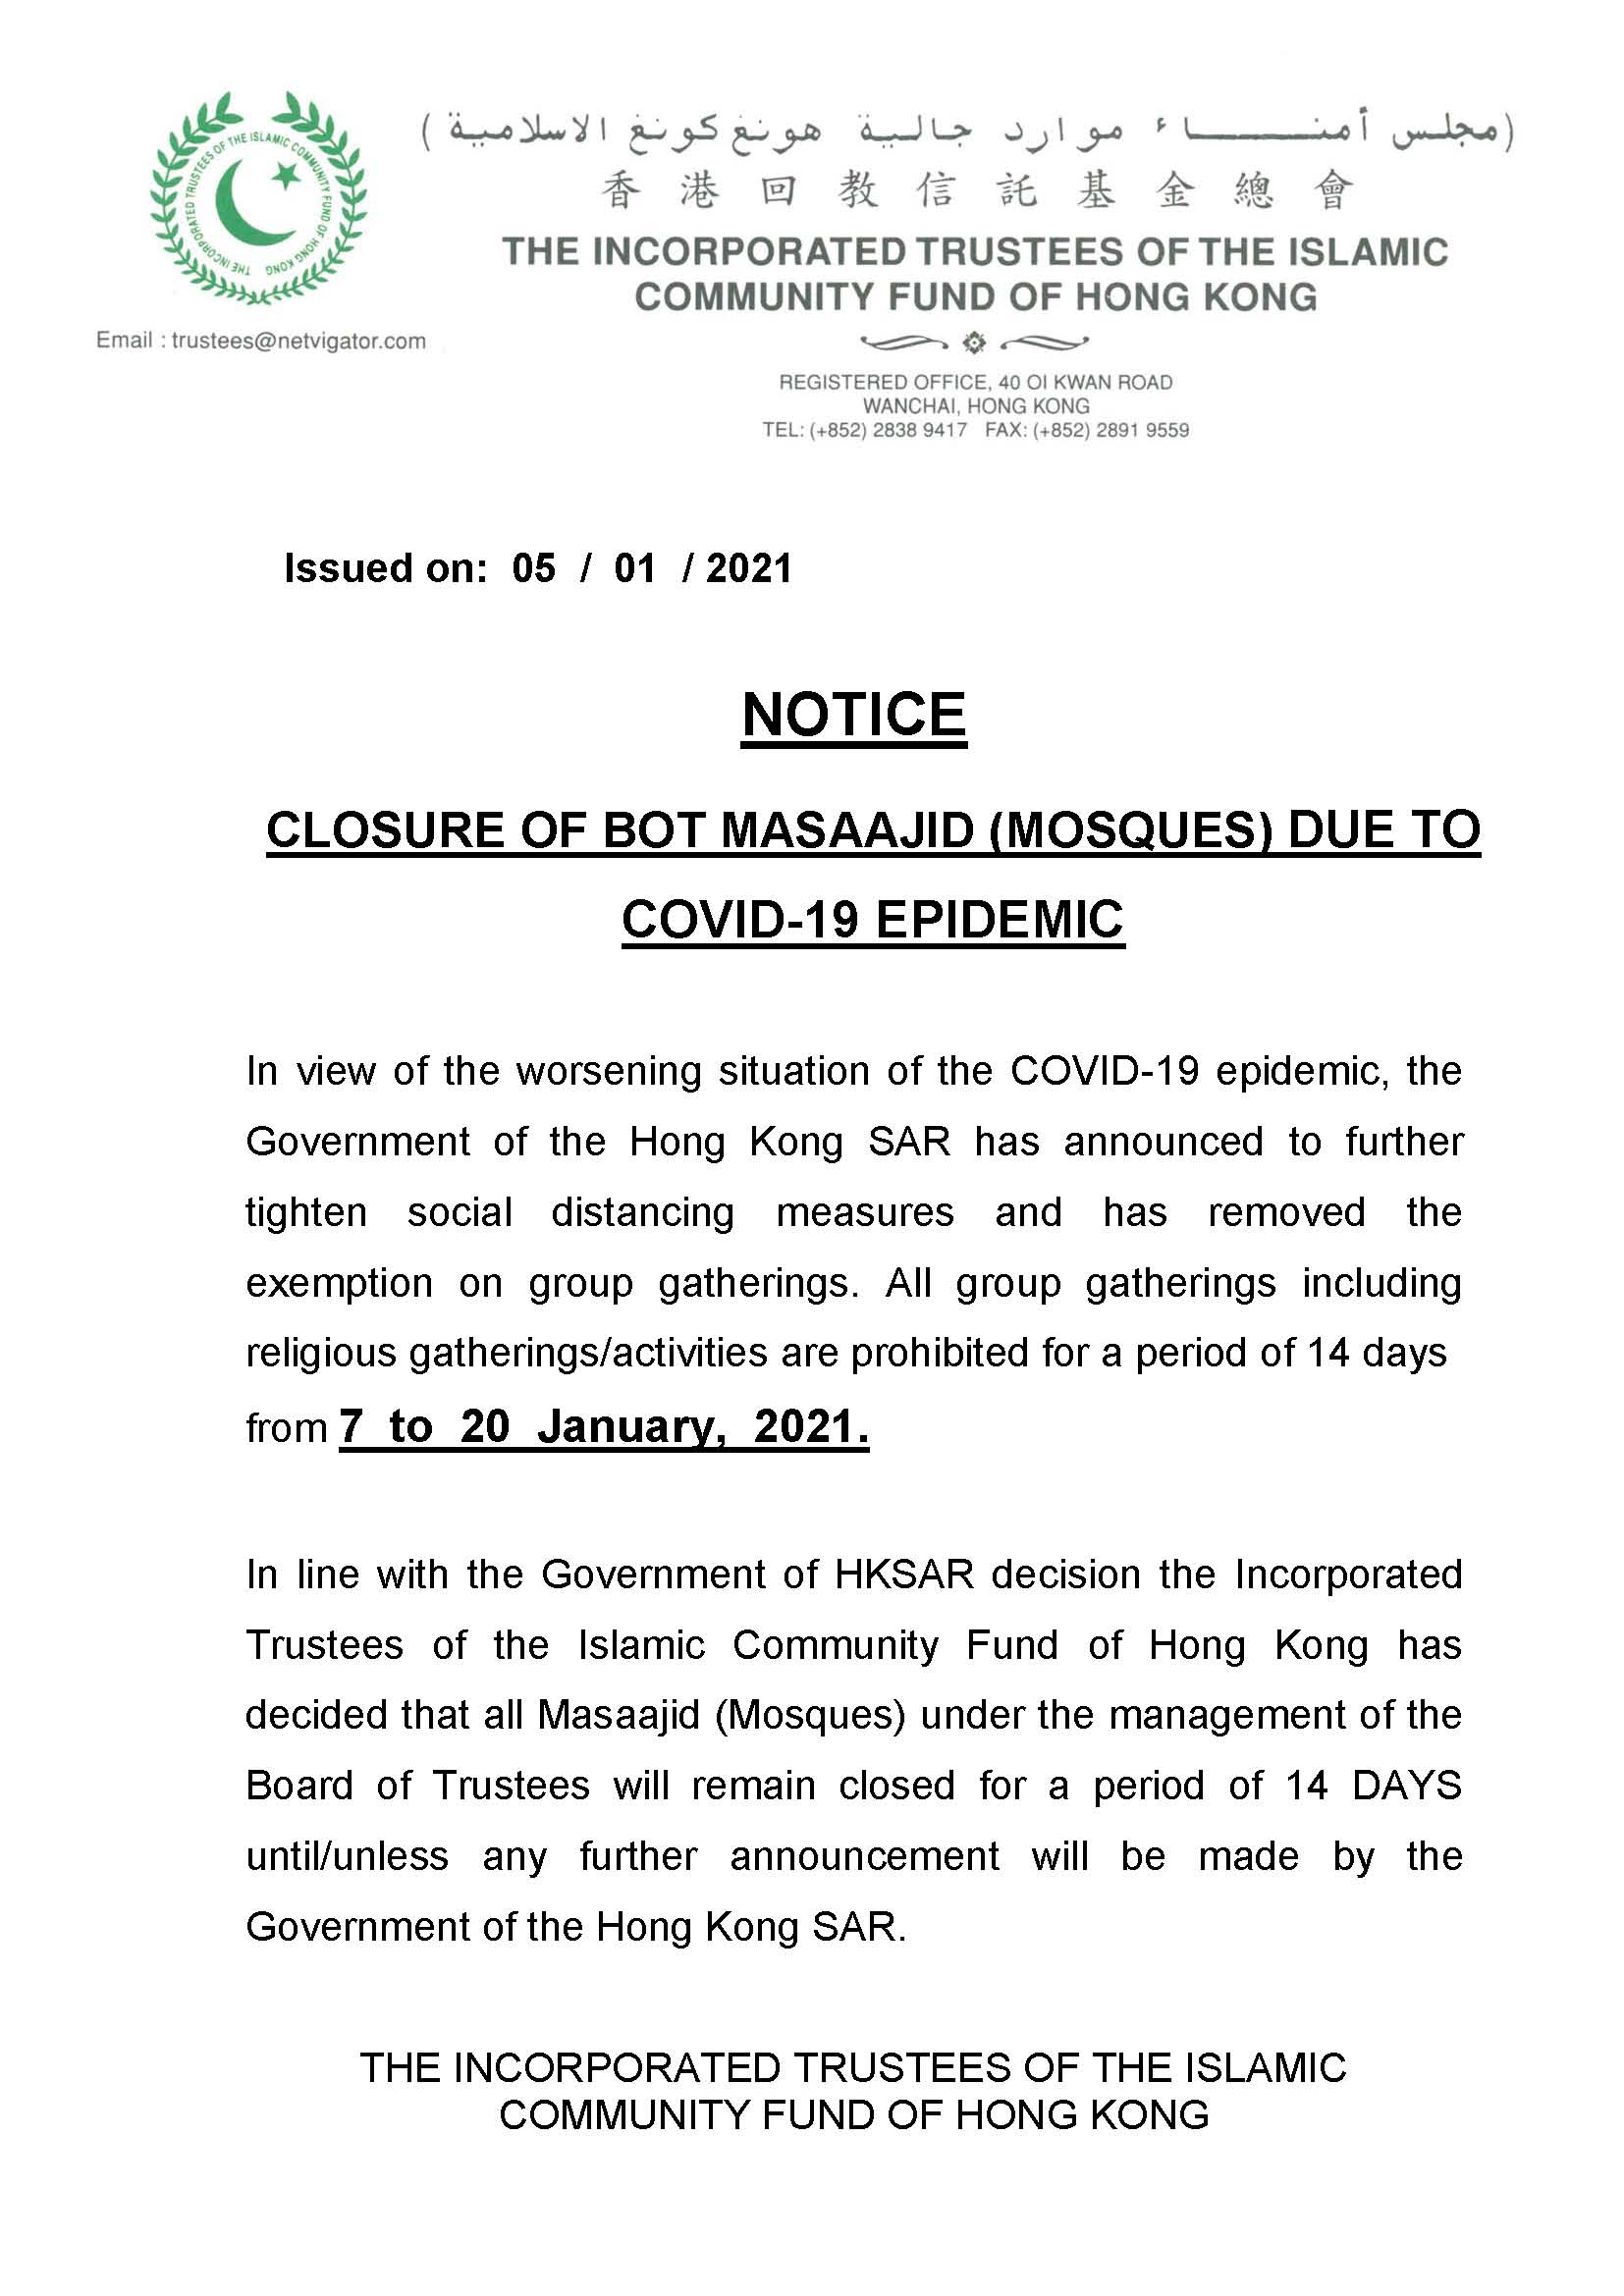 Closure of BOT Masjids due to COVID-19 (5 January 2021)